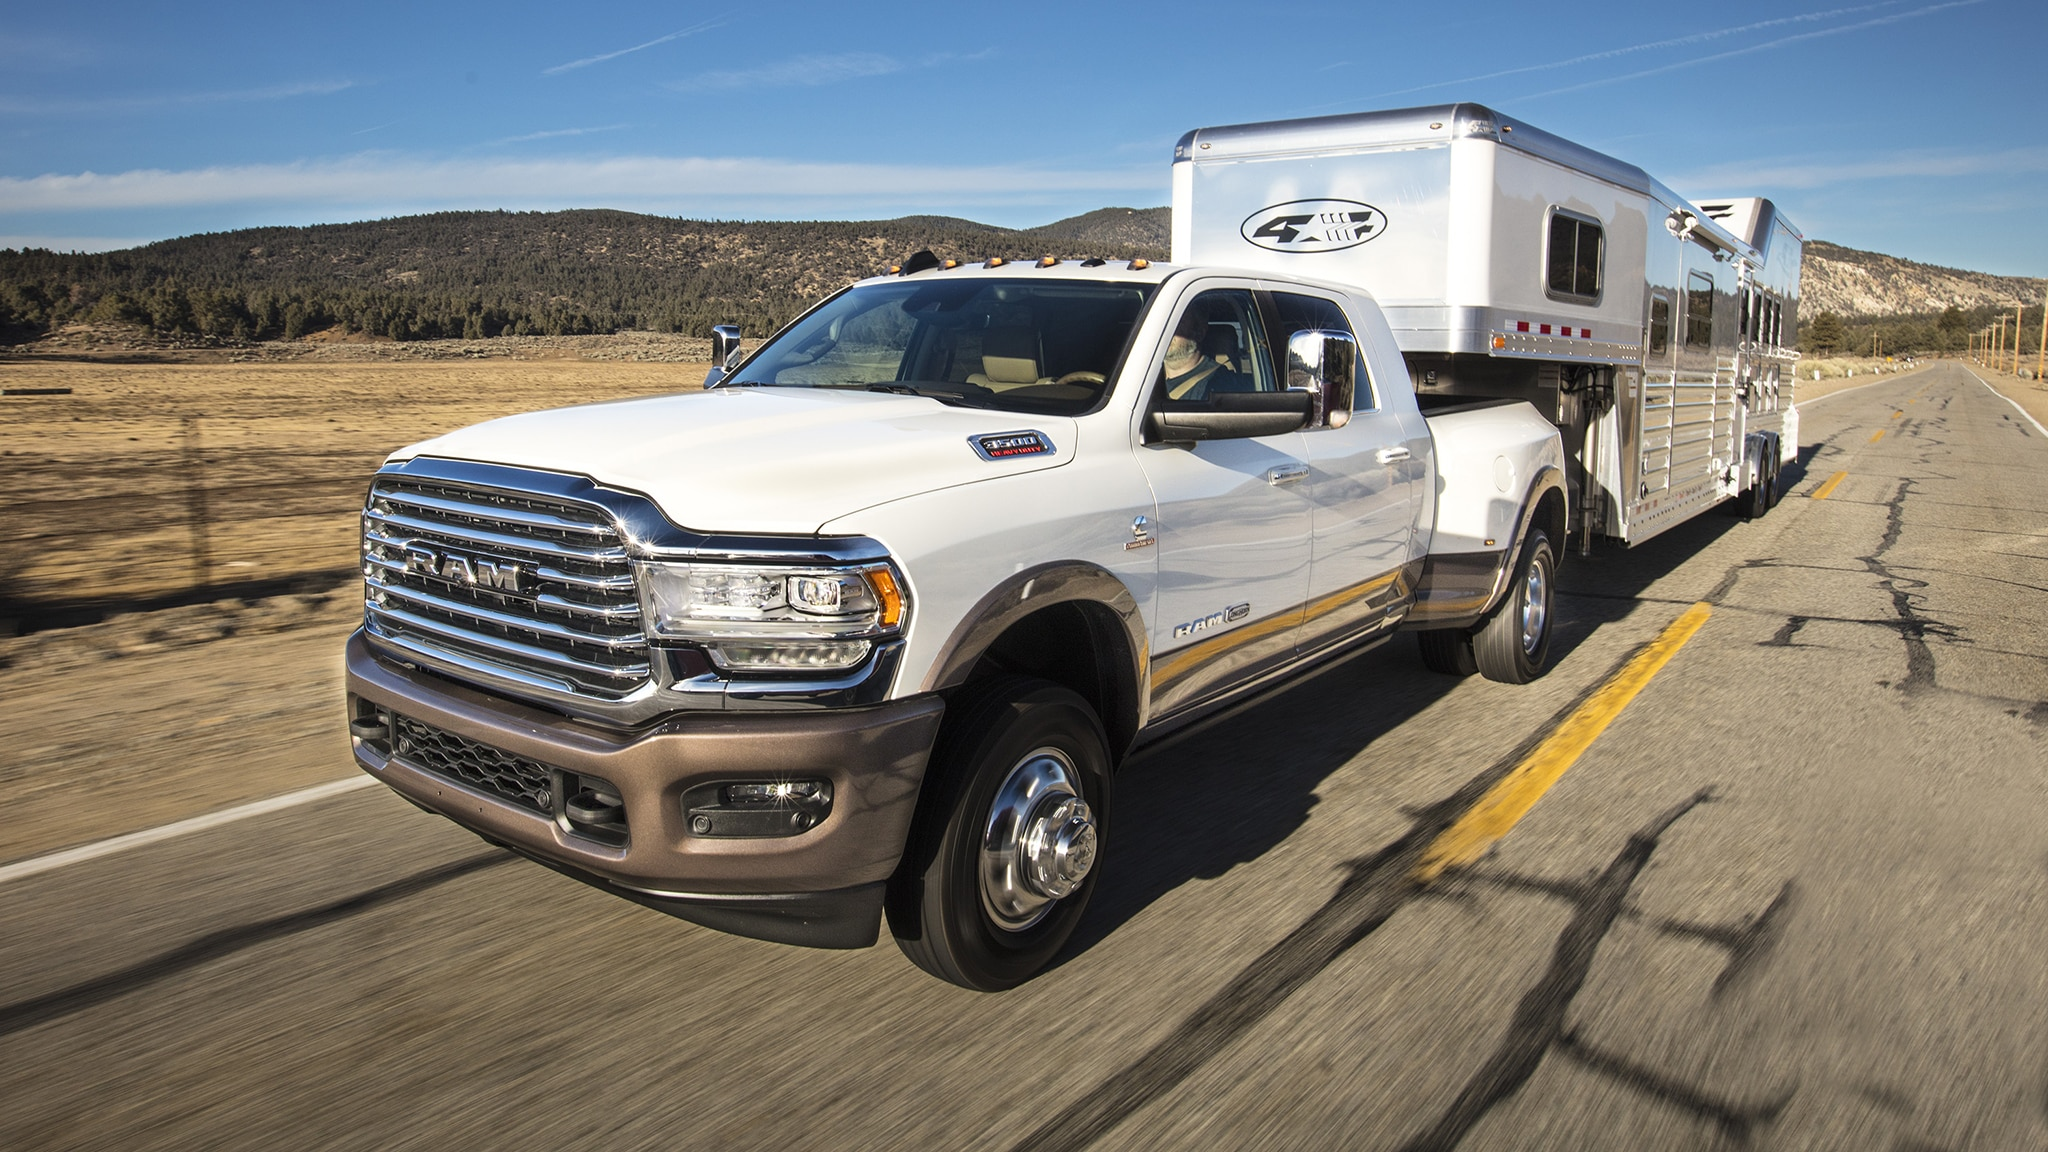 2019 Ram 2500/3500 First Drive Review: Great Numbers, Great